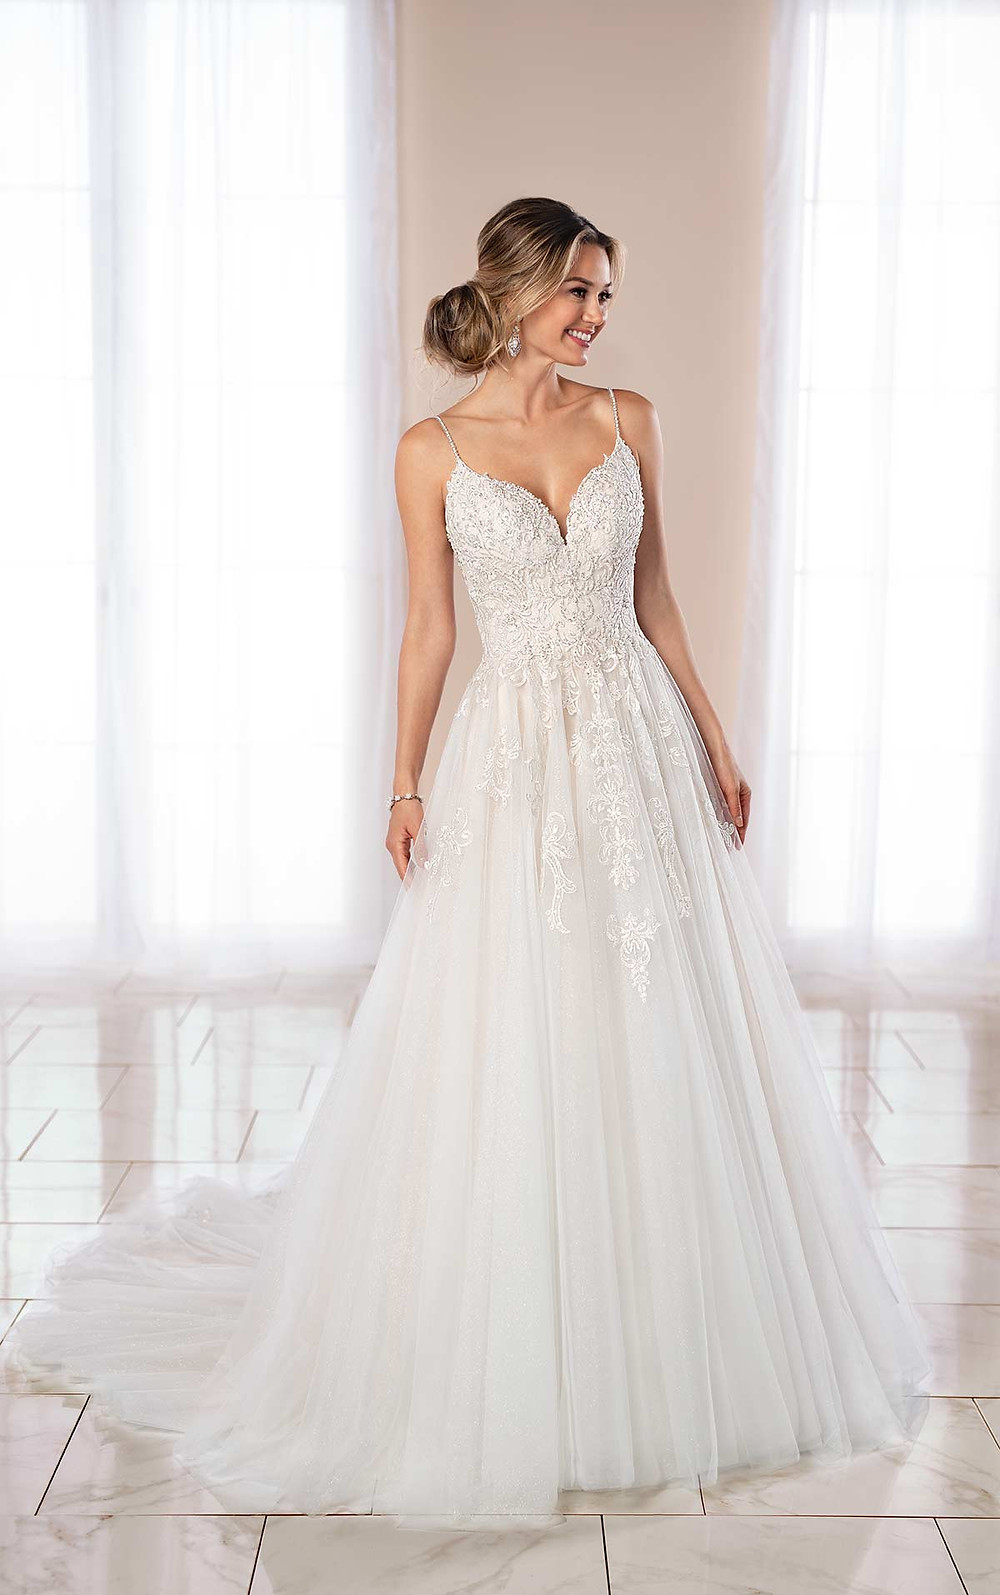 A Stella York 2020 lace and tulle ball gown wedding dress with straps